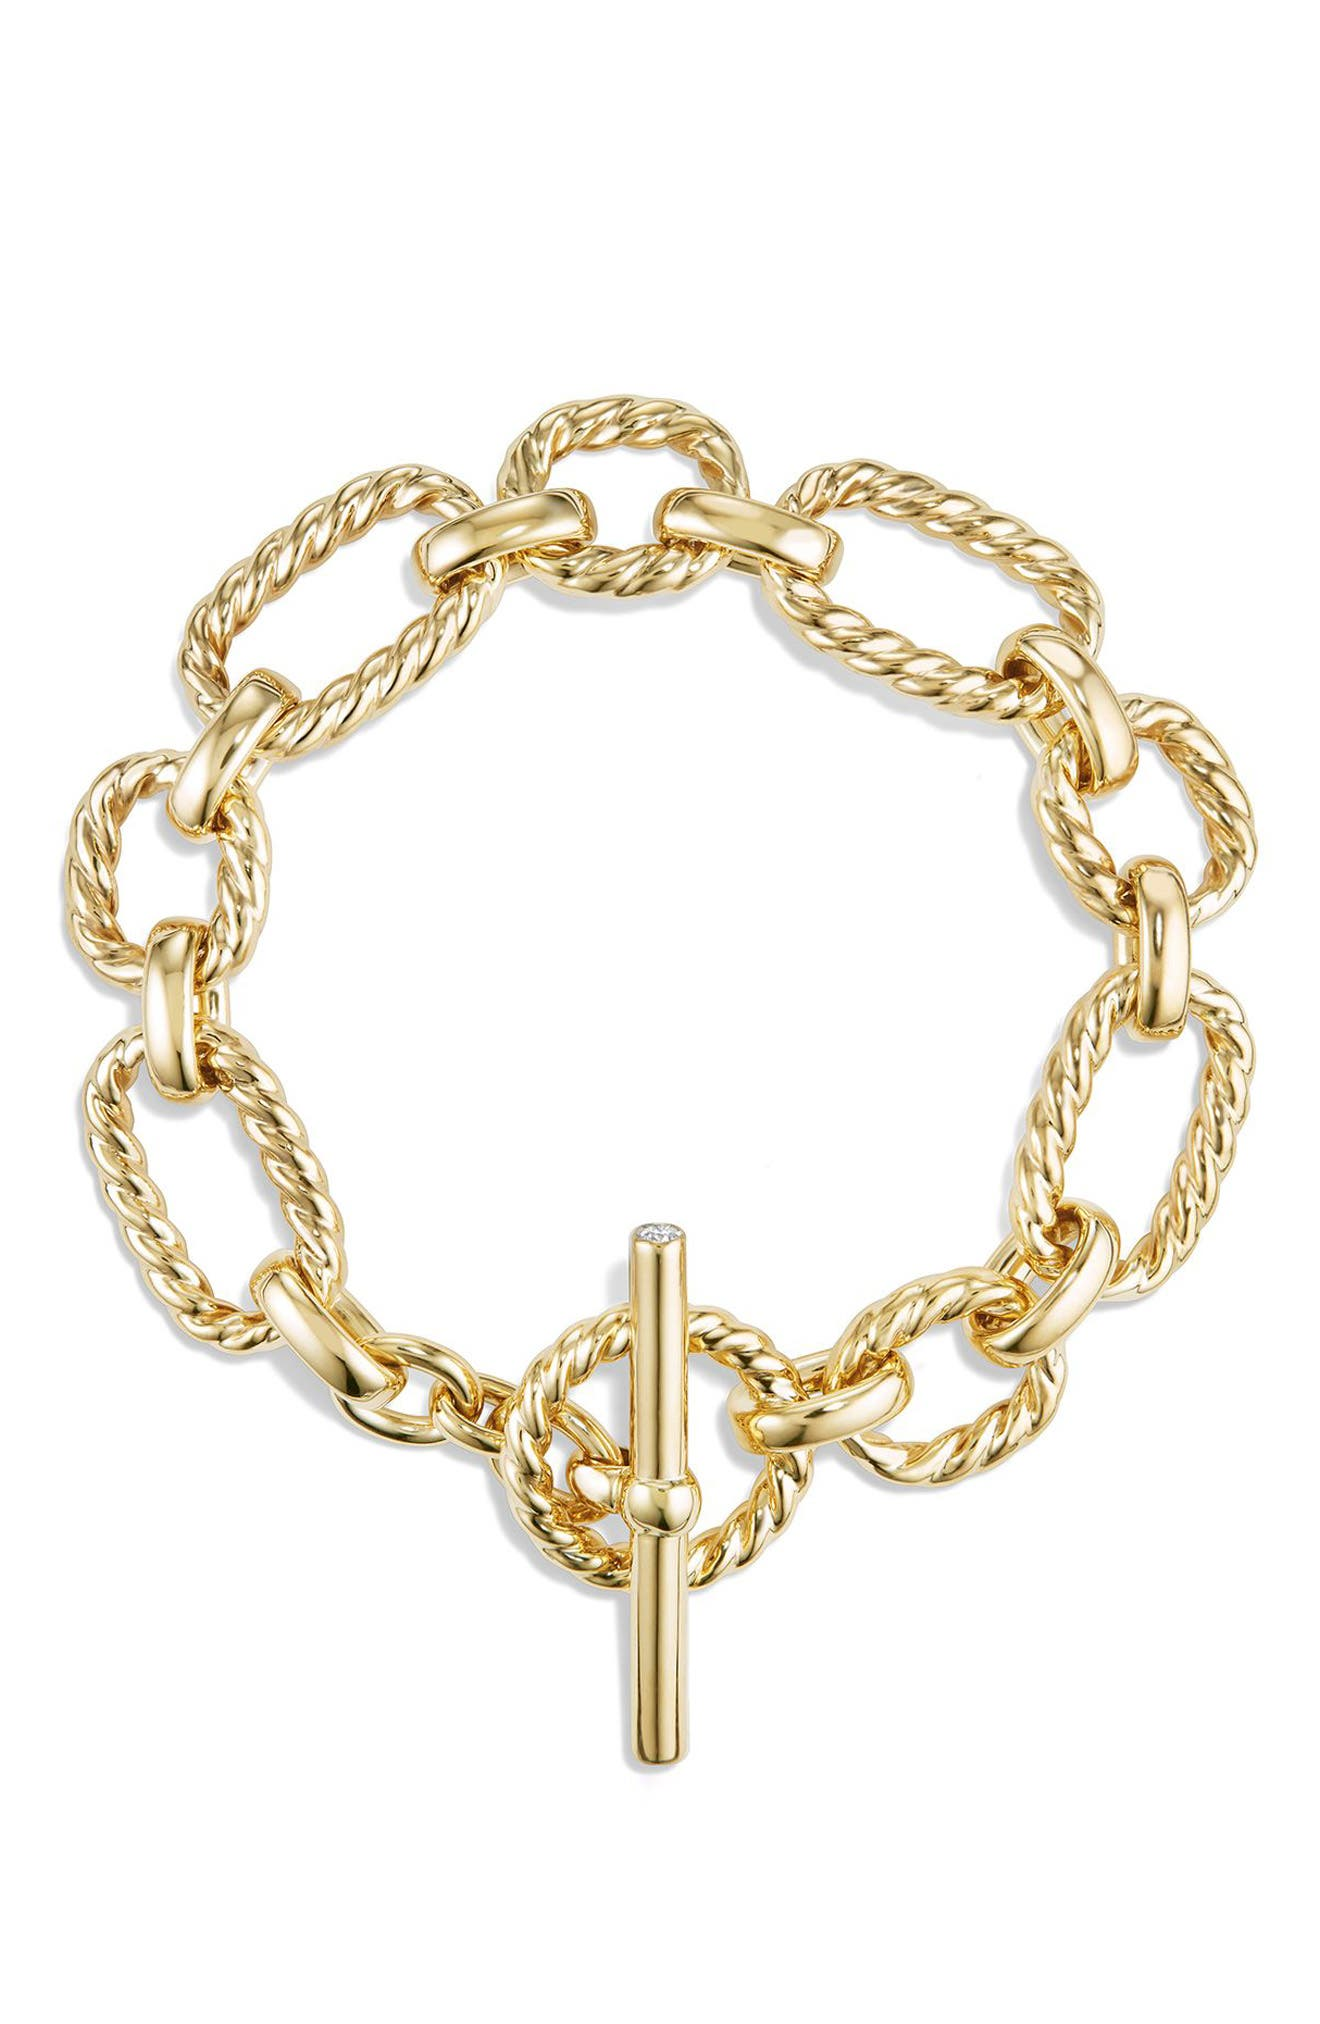 'Chain' Cushion Link Bracelet with Diamonds in 18K Gold,                             Alternate thumbnail 3, color,                             GOLD